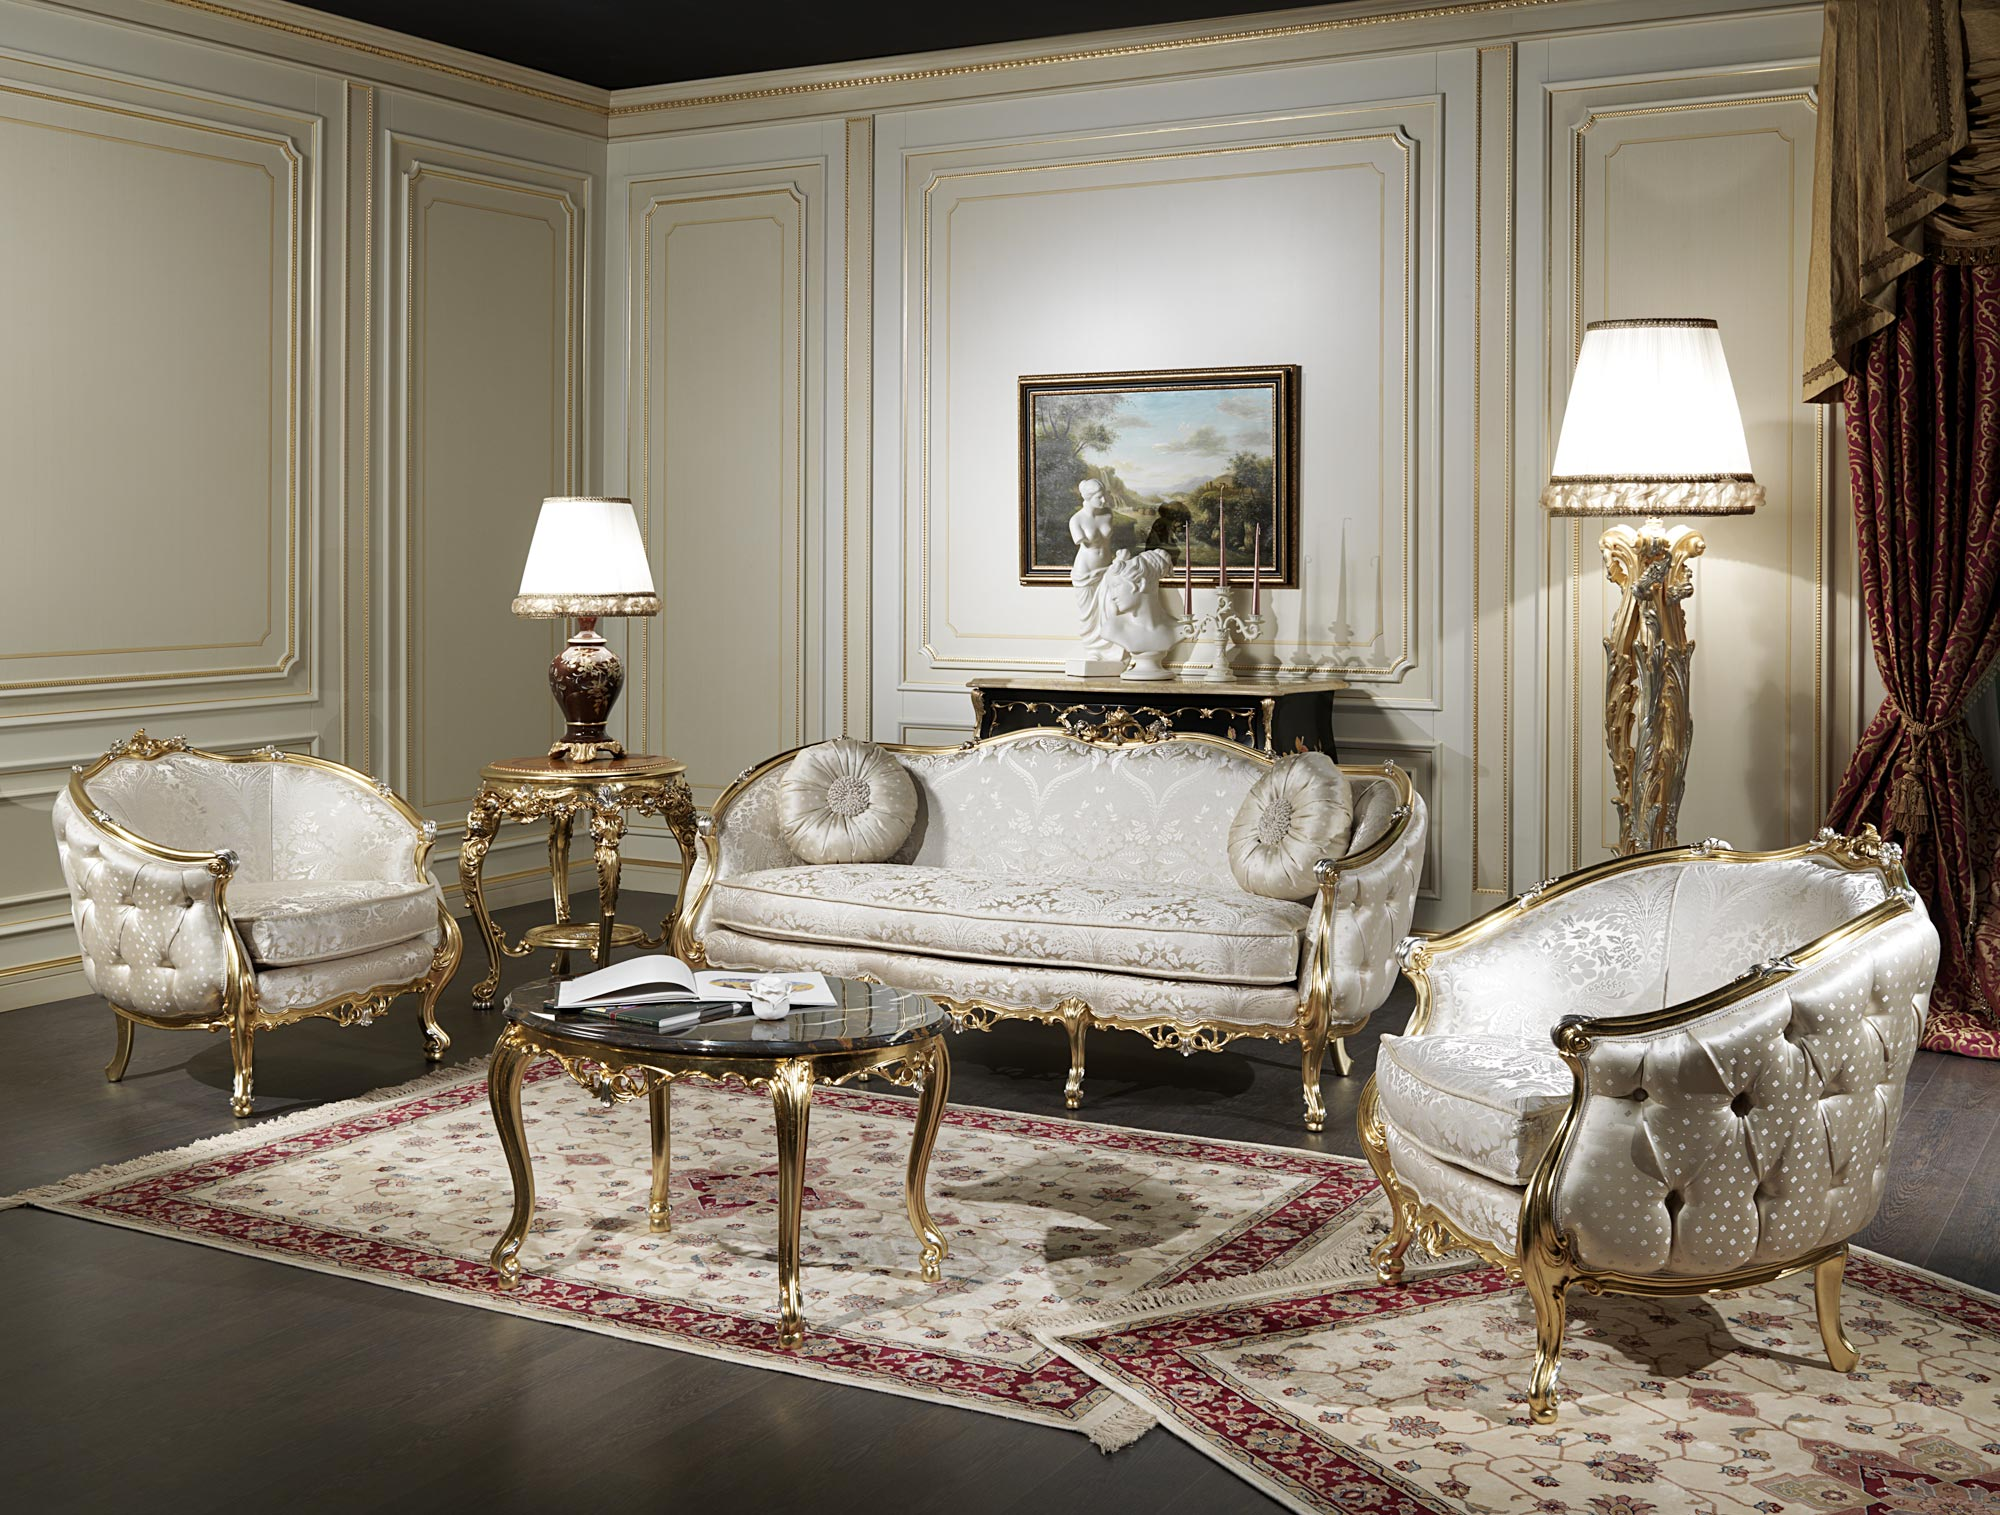 Venezia Luxury Classic Living Room Vimercati Classic Furniture - Classic italian furniture